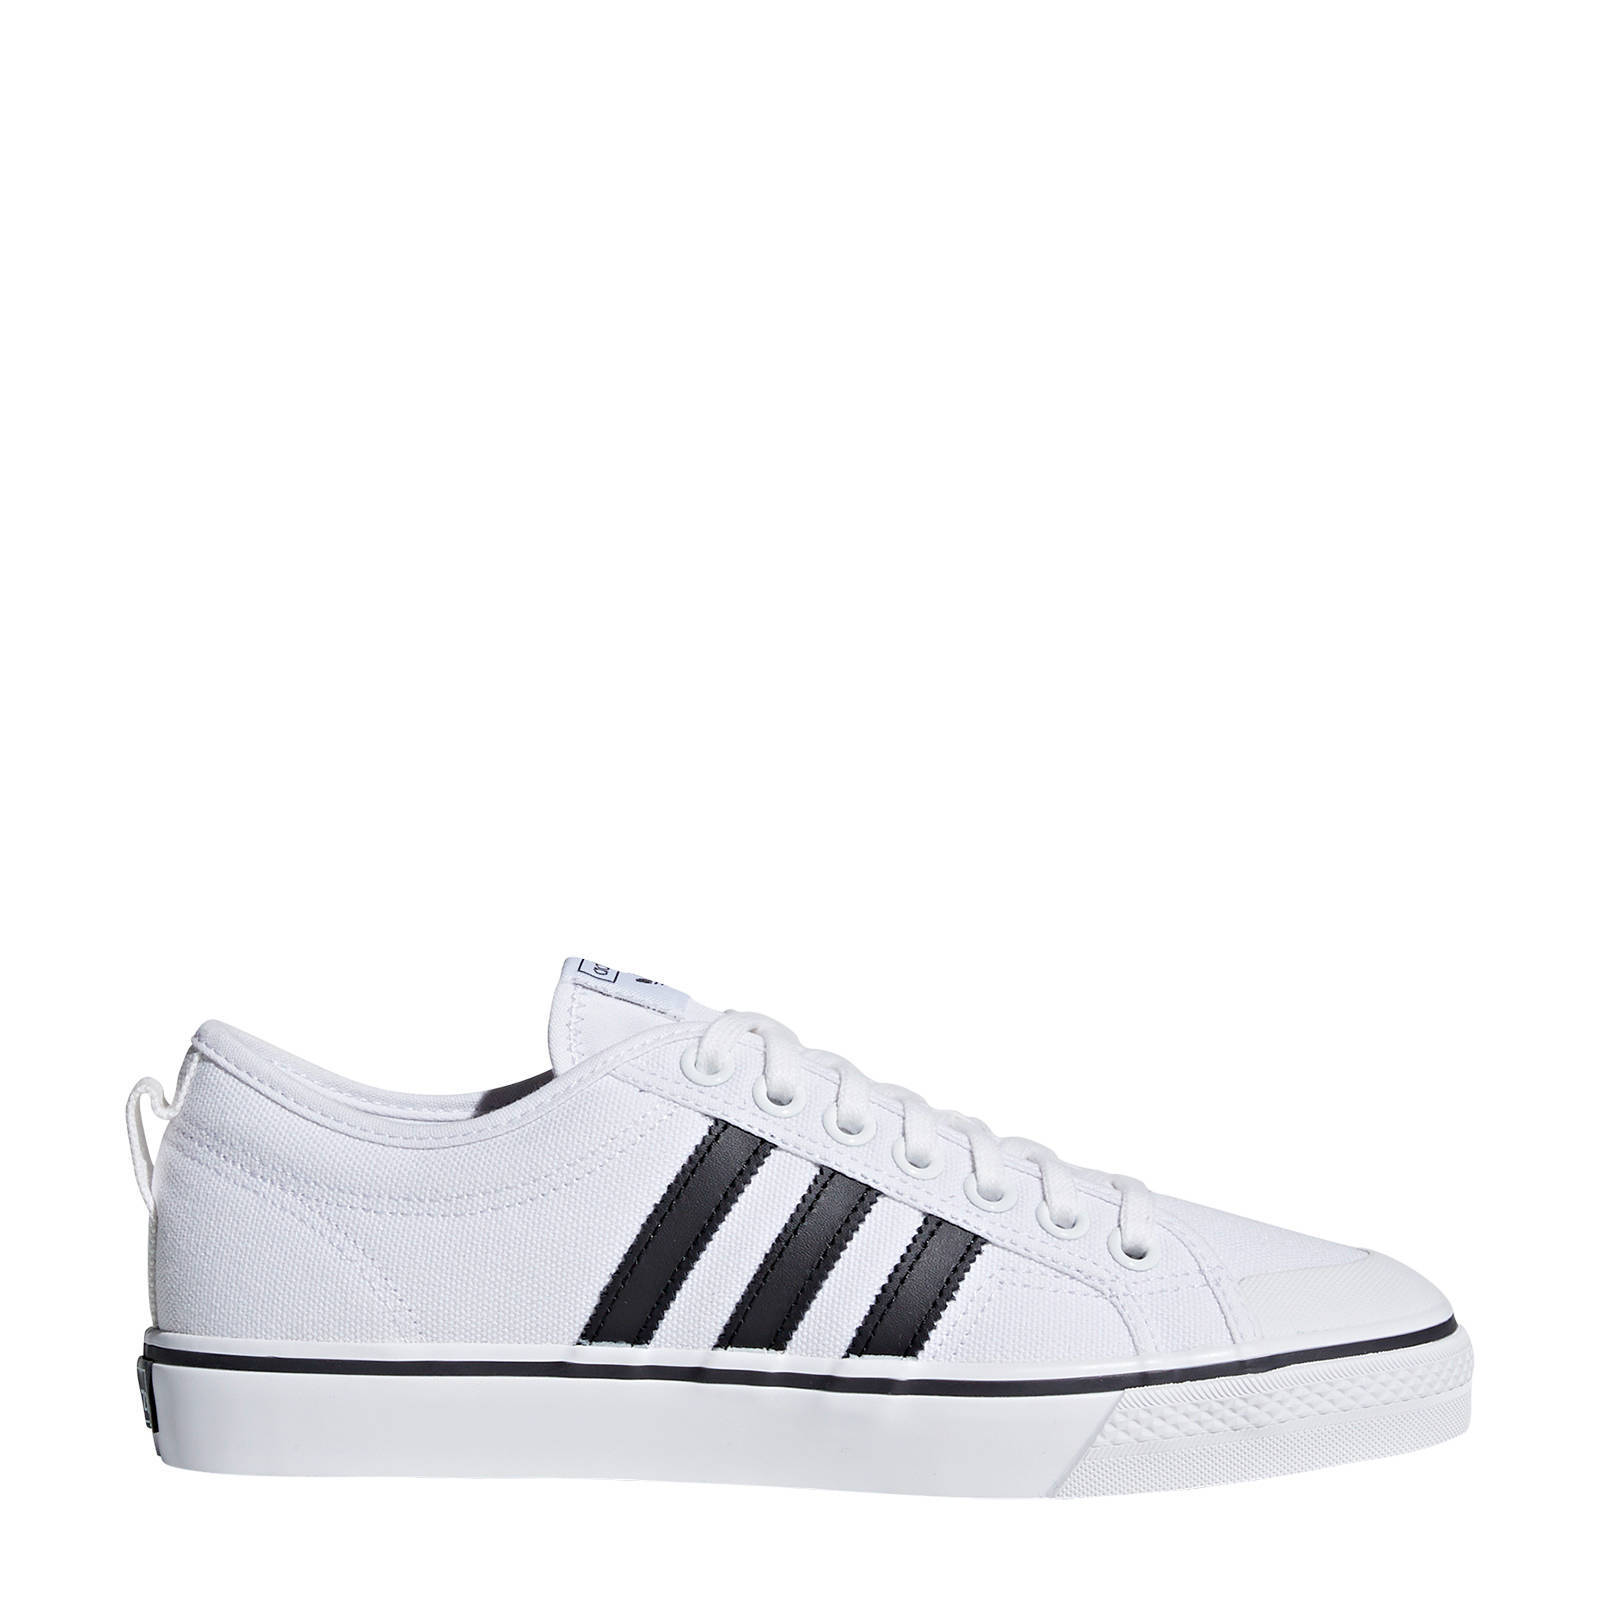 adidas nizza wit